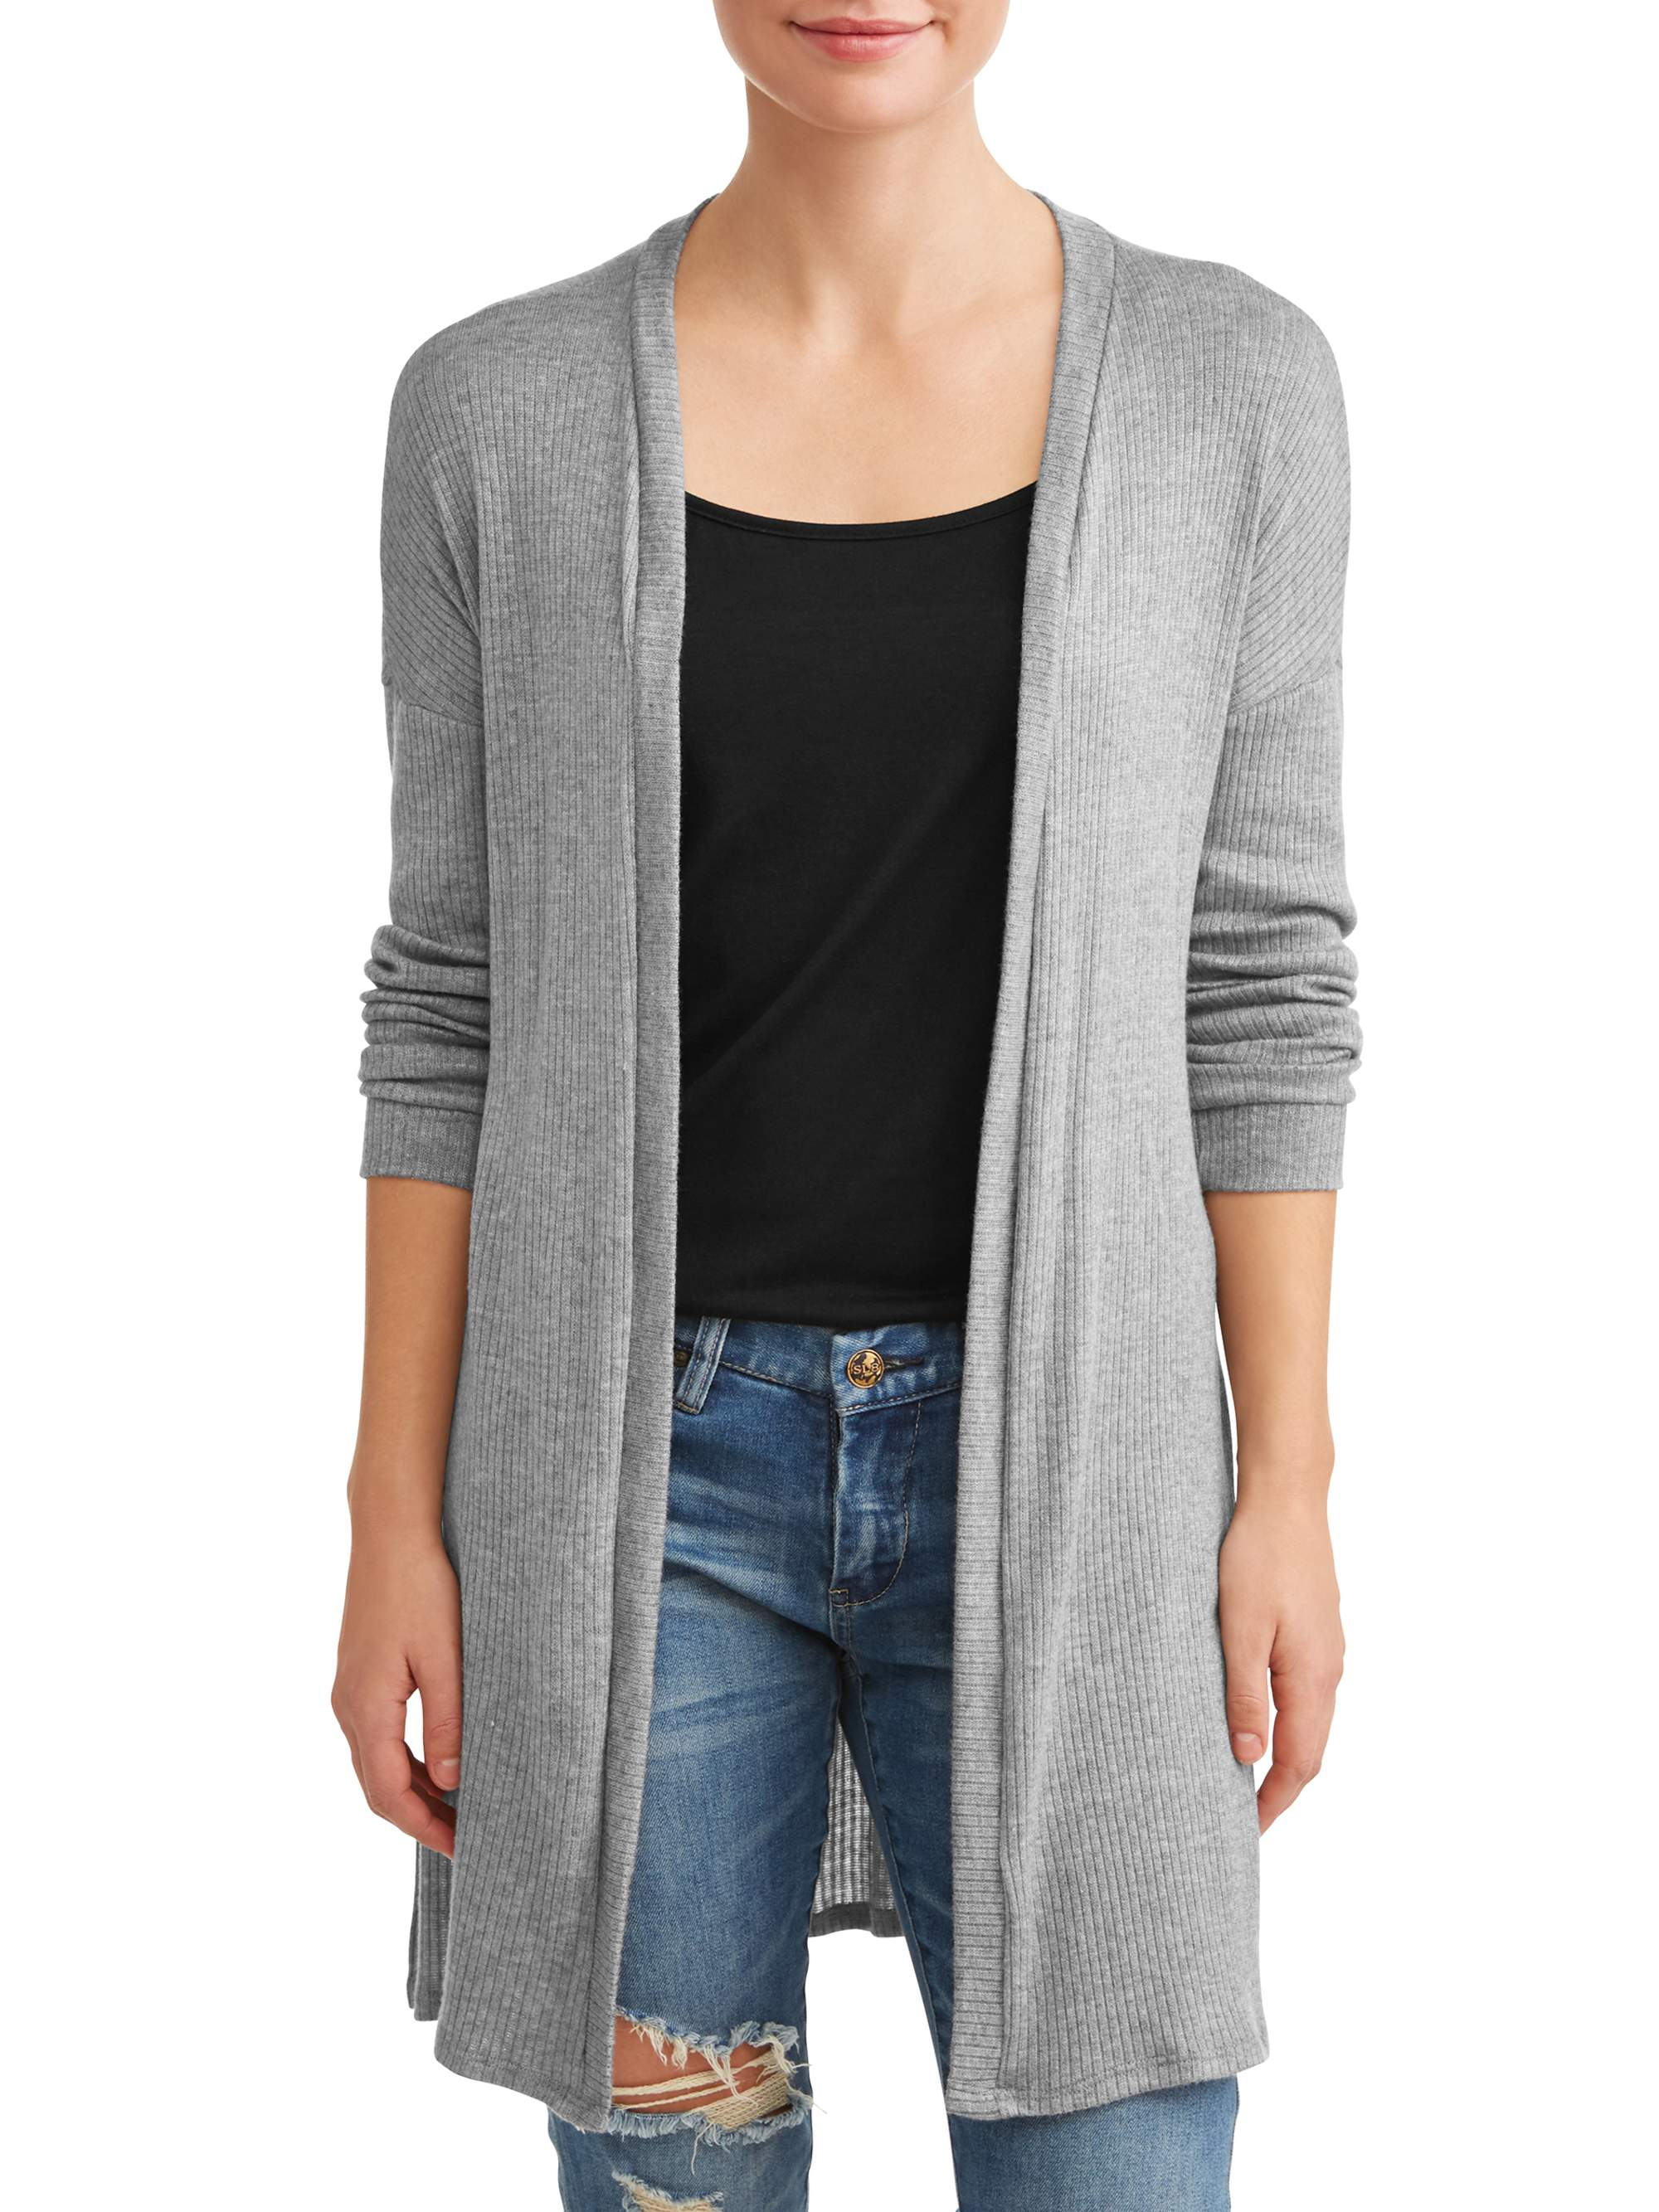 Women's Long Open Cardigan